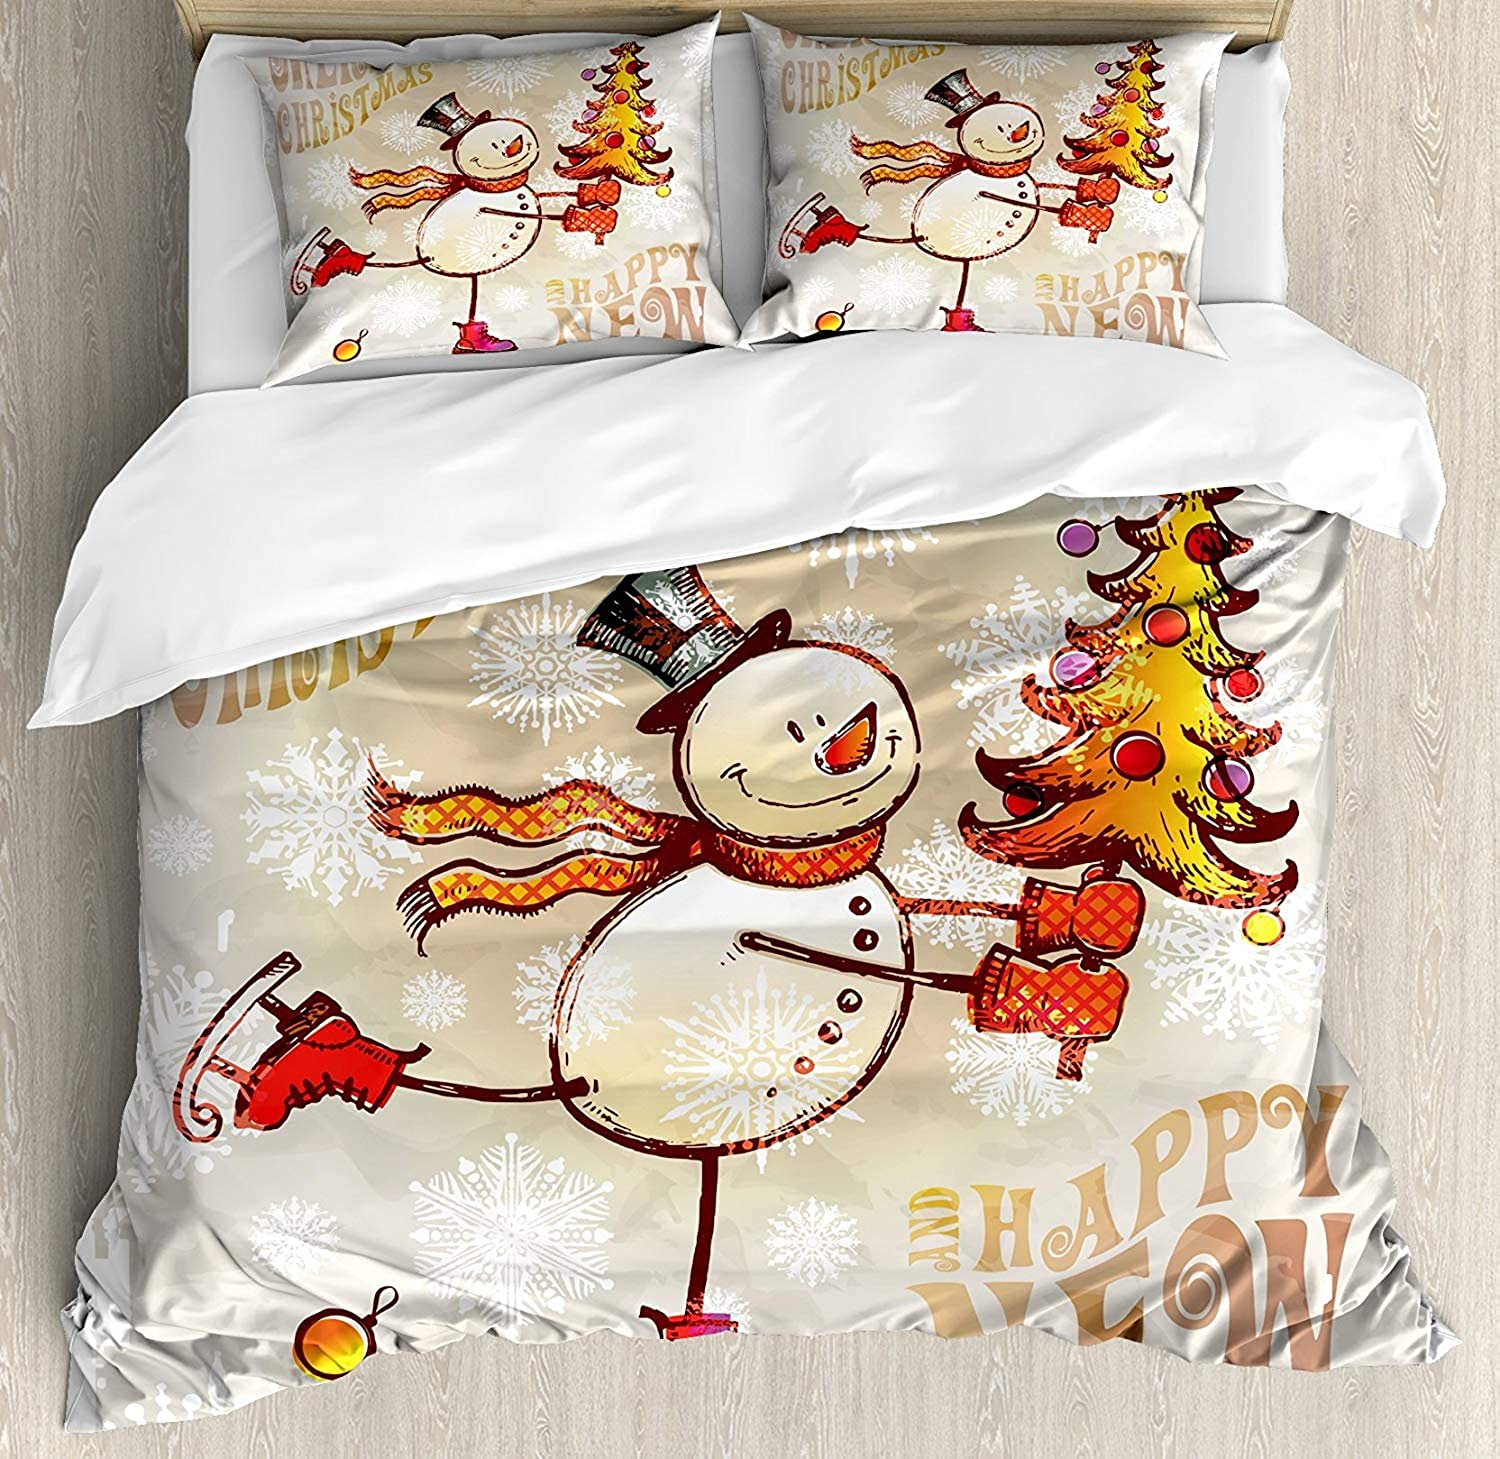 Christmas Duvet Cover Set, Luxury Soft Hotel Quality 4 Piece King Plush Microfiber Bedding Sets, Skating Happy Snowman with Christmas Tree Cheerful Hand Drawn Ornate Snowflakes